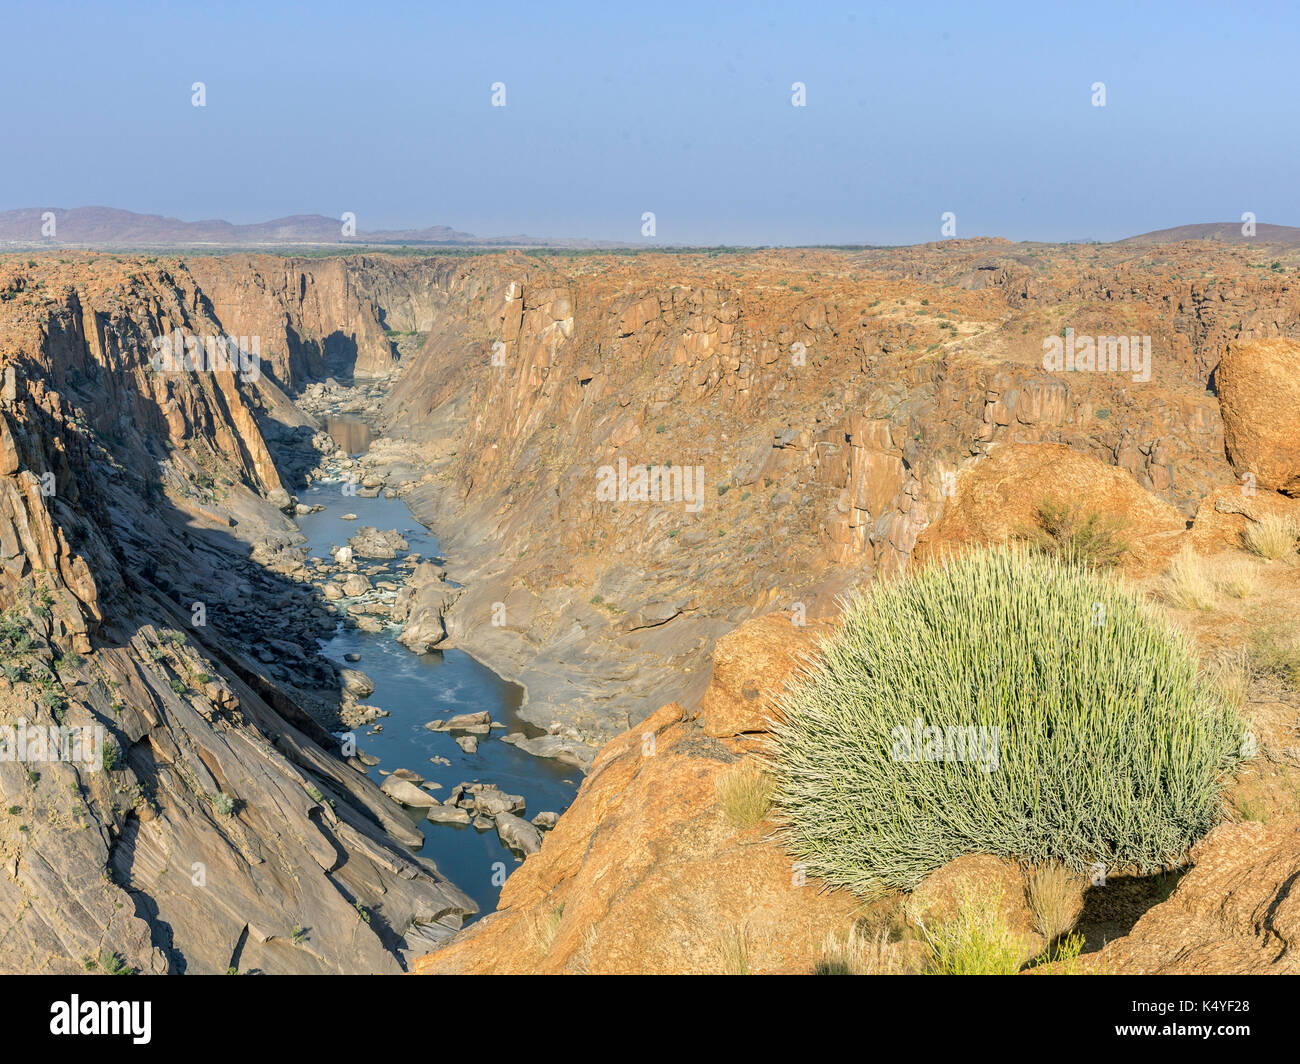 View of the canyon of the River Oranje from Ararat Viewpoint, Augrabies Falls NP, North Cape, South Africa - Stock Image